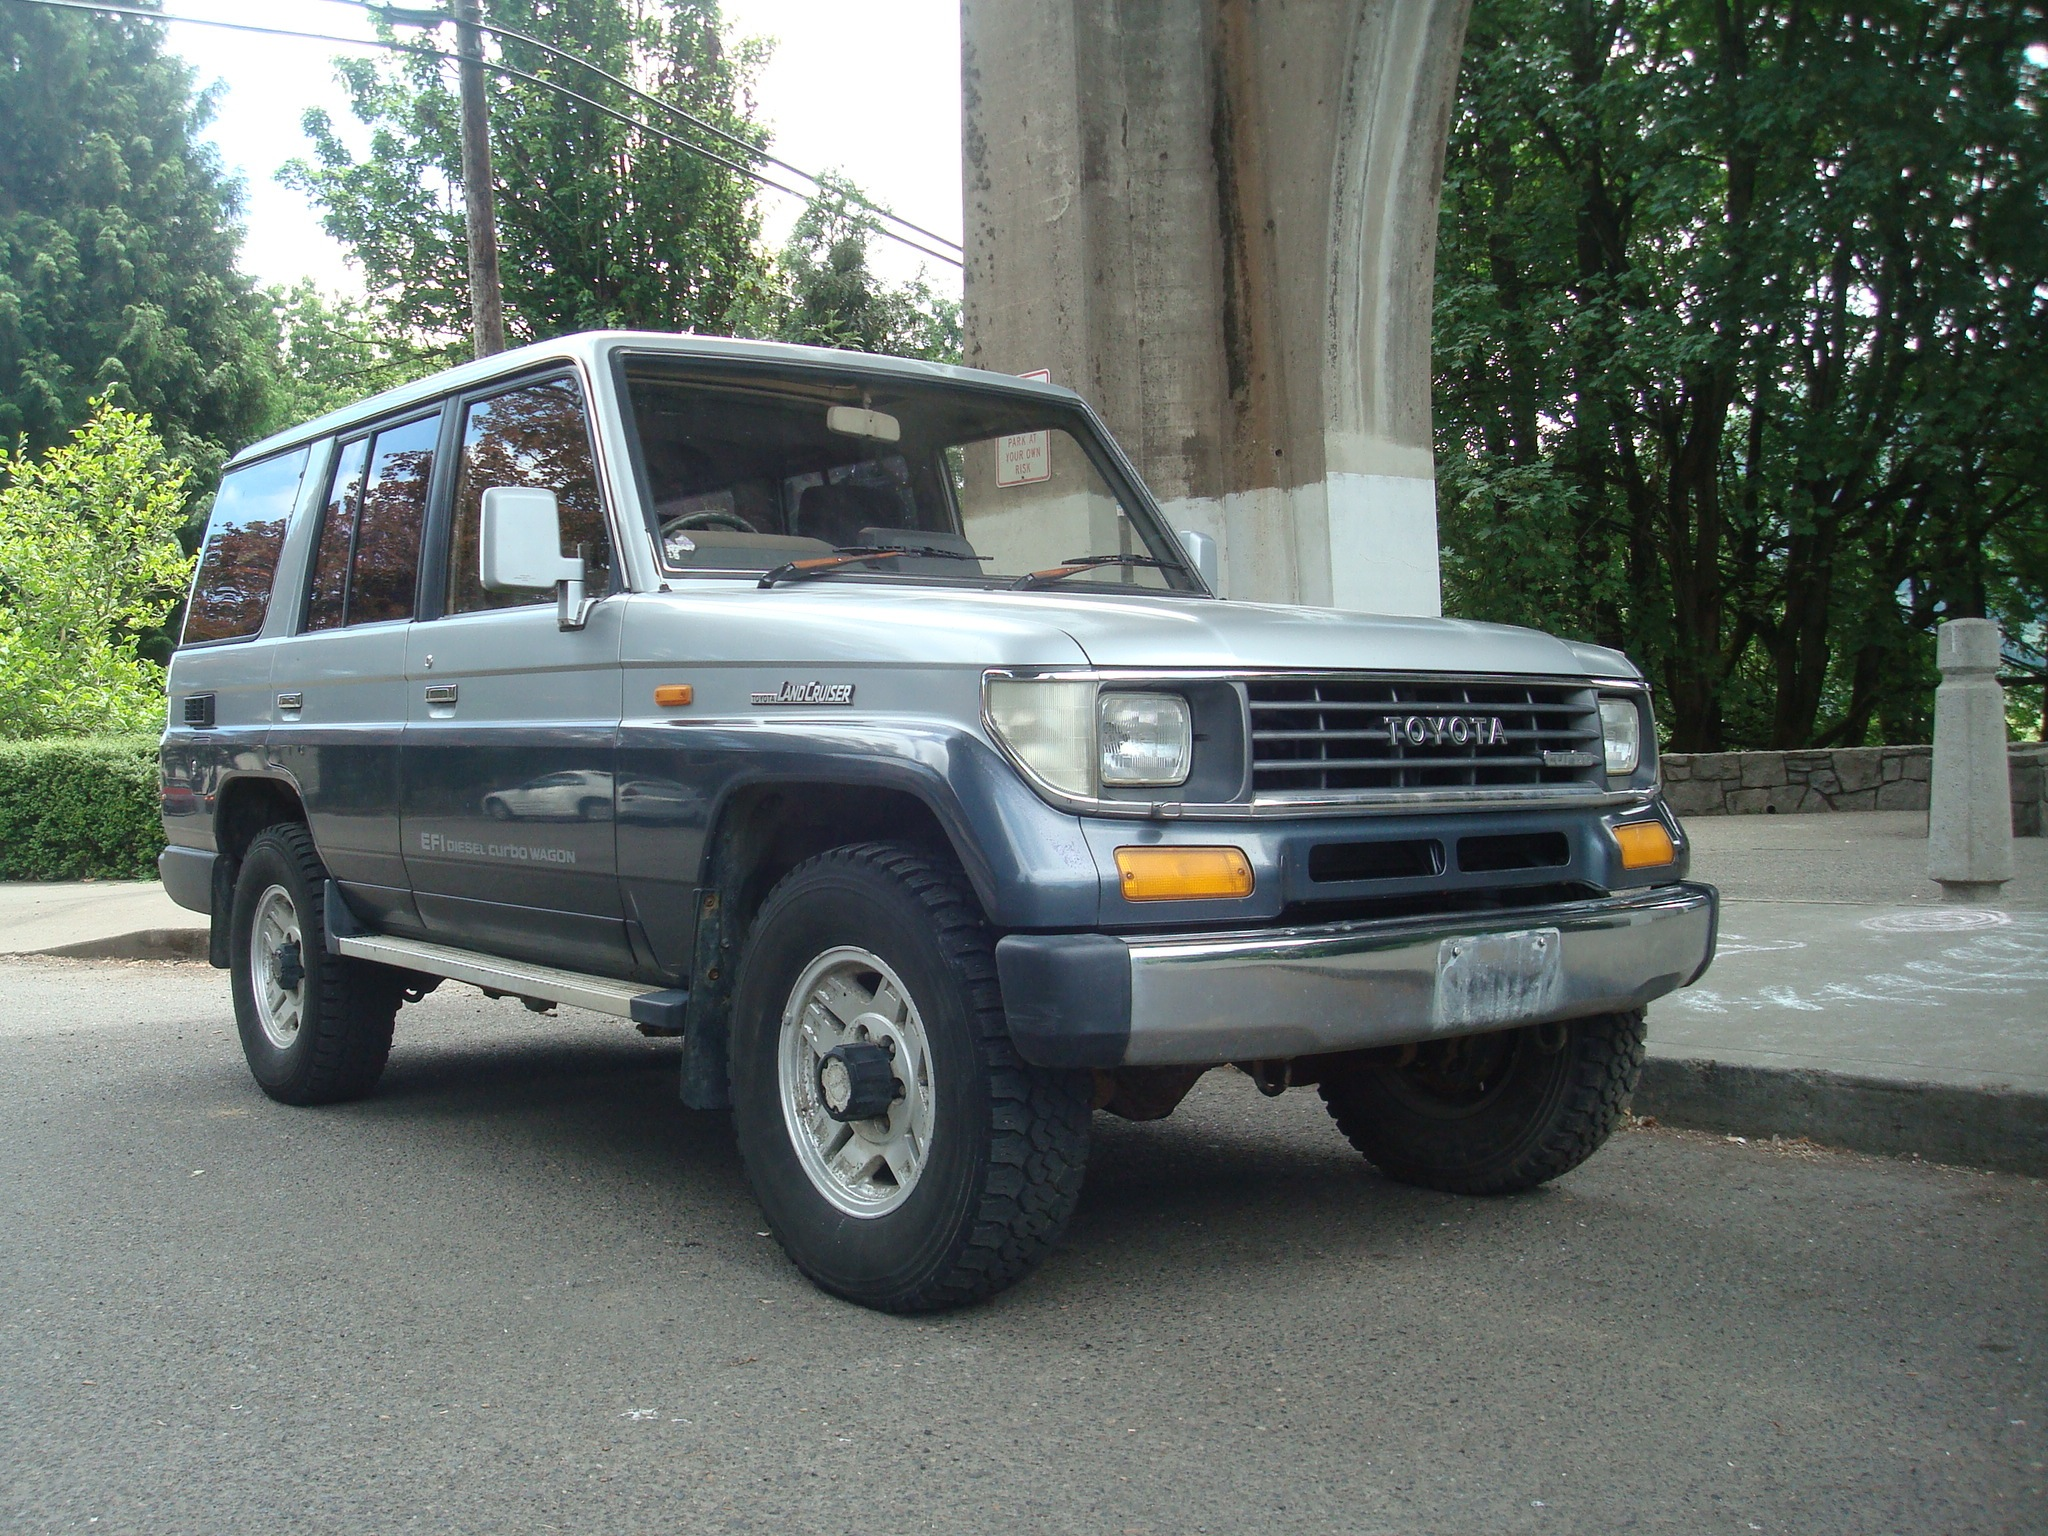 sold 1990 toyota landcruiser turbo diesel efi wagon very nice zombie motors. Black Bedroom Furniture Sets. Home Design Ideas